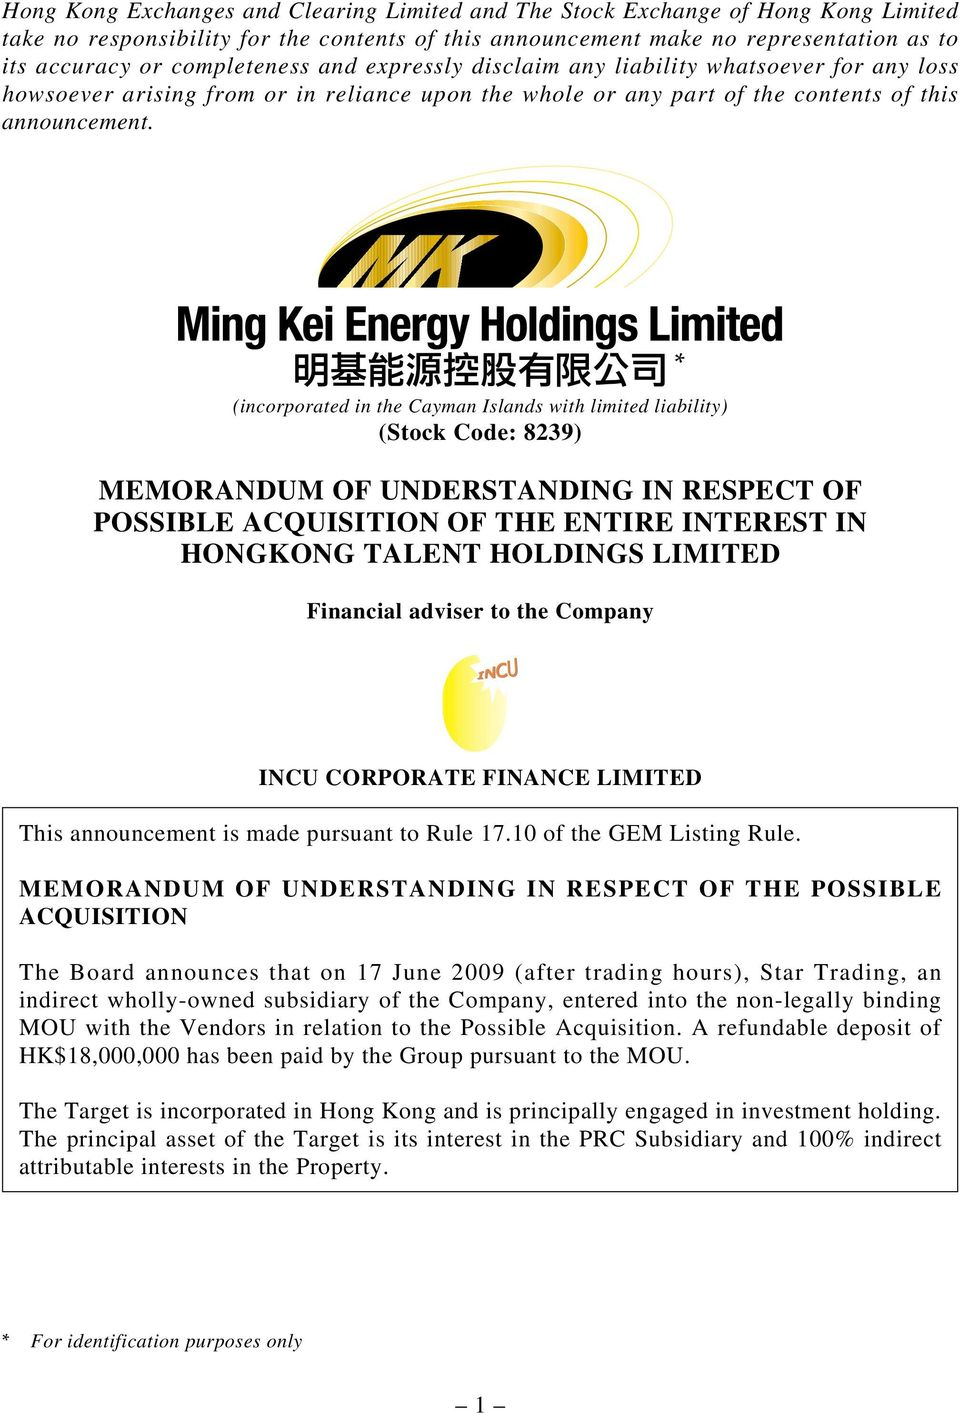 (incorporated in the Cayman Islands with limited liability) (Stock Code: 8239) MEMORANDUM OF UNDERSTANDING IN RESPECT OF POSSIBLE ACQUISITION OF THE ENTIRE INTEREST IN HONGKONG TALENT HOLDINGS